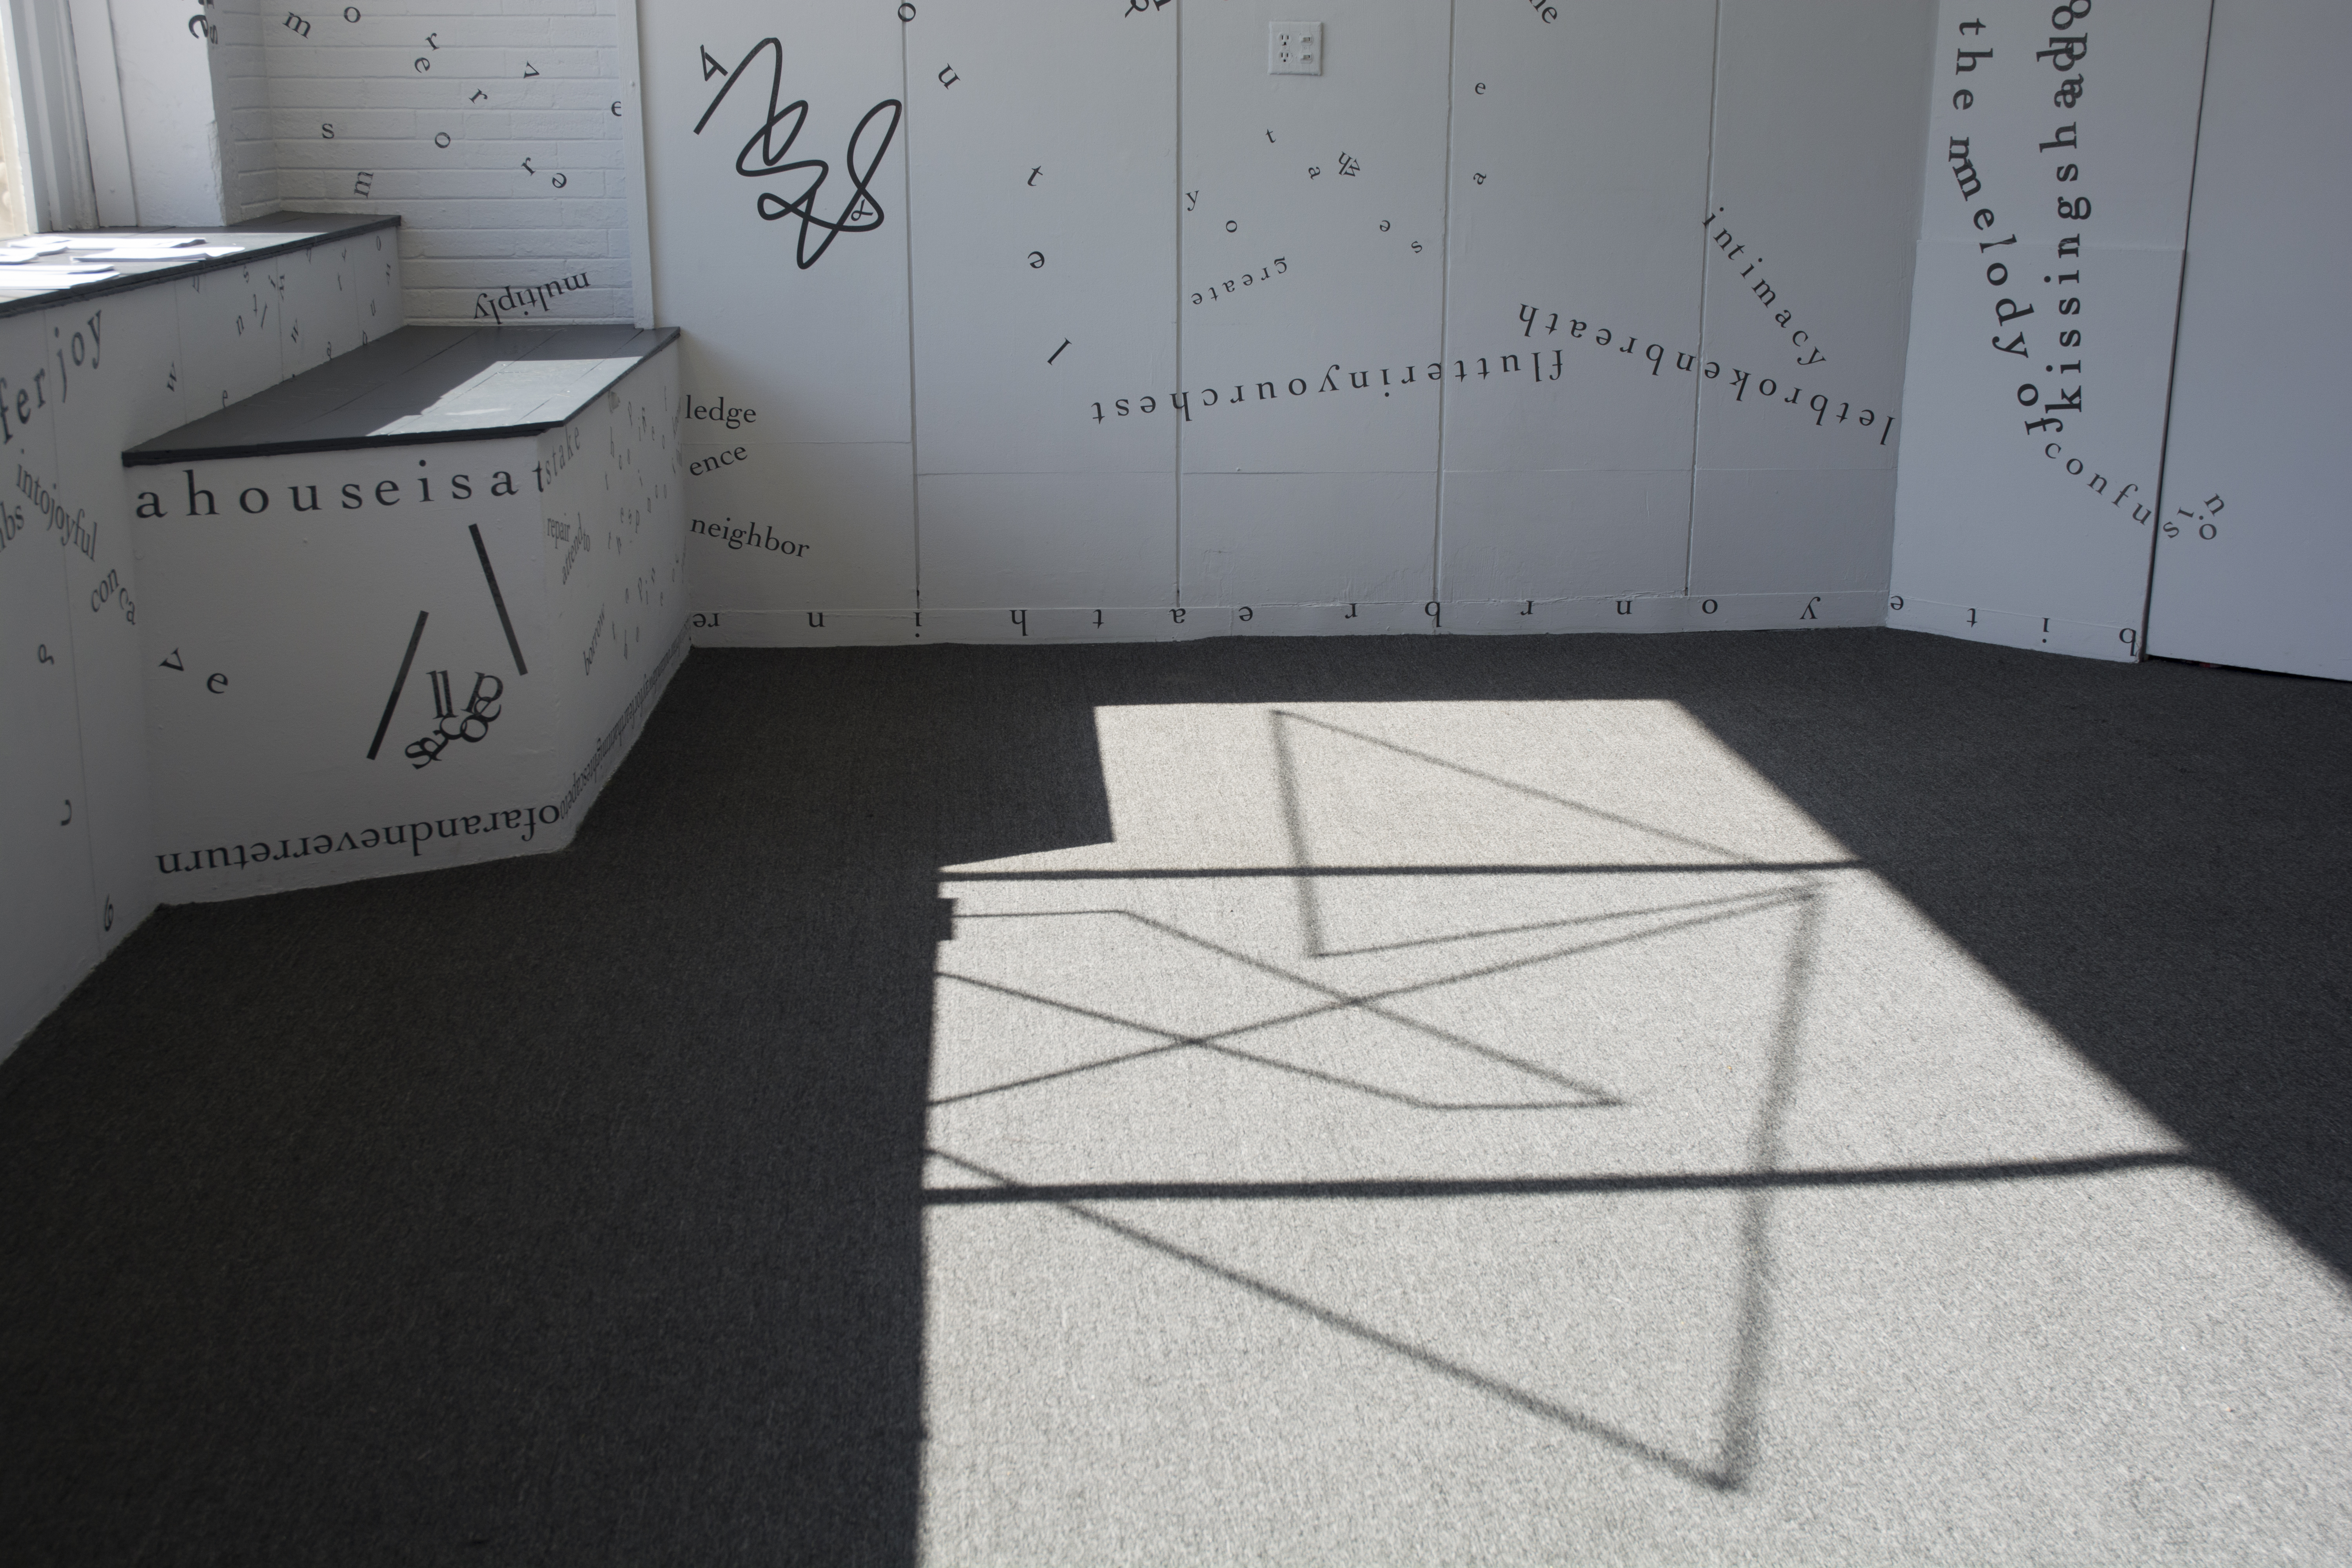 This photo shows part of the floor of the gallery, with sunlight from outside casting the shadow of the windowsill, the windowframe, and a motif of intersecting vinyl triangular shapes onto the grey rug. Black vinyl letters are installed directly onto the white gallery walls, in the form of words and phrases in English and Hindi. Text appears in different sizes and spatial orientations (e.g., right-side up, upside-down, diagonal, vertical, and organic shapes), with some words/phrases expanded in space, condensed, or intersecting with other text. Gestural drawings—also made of black—are shown on the top left-hand side of the image.